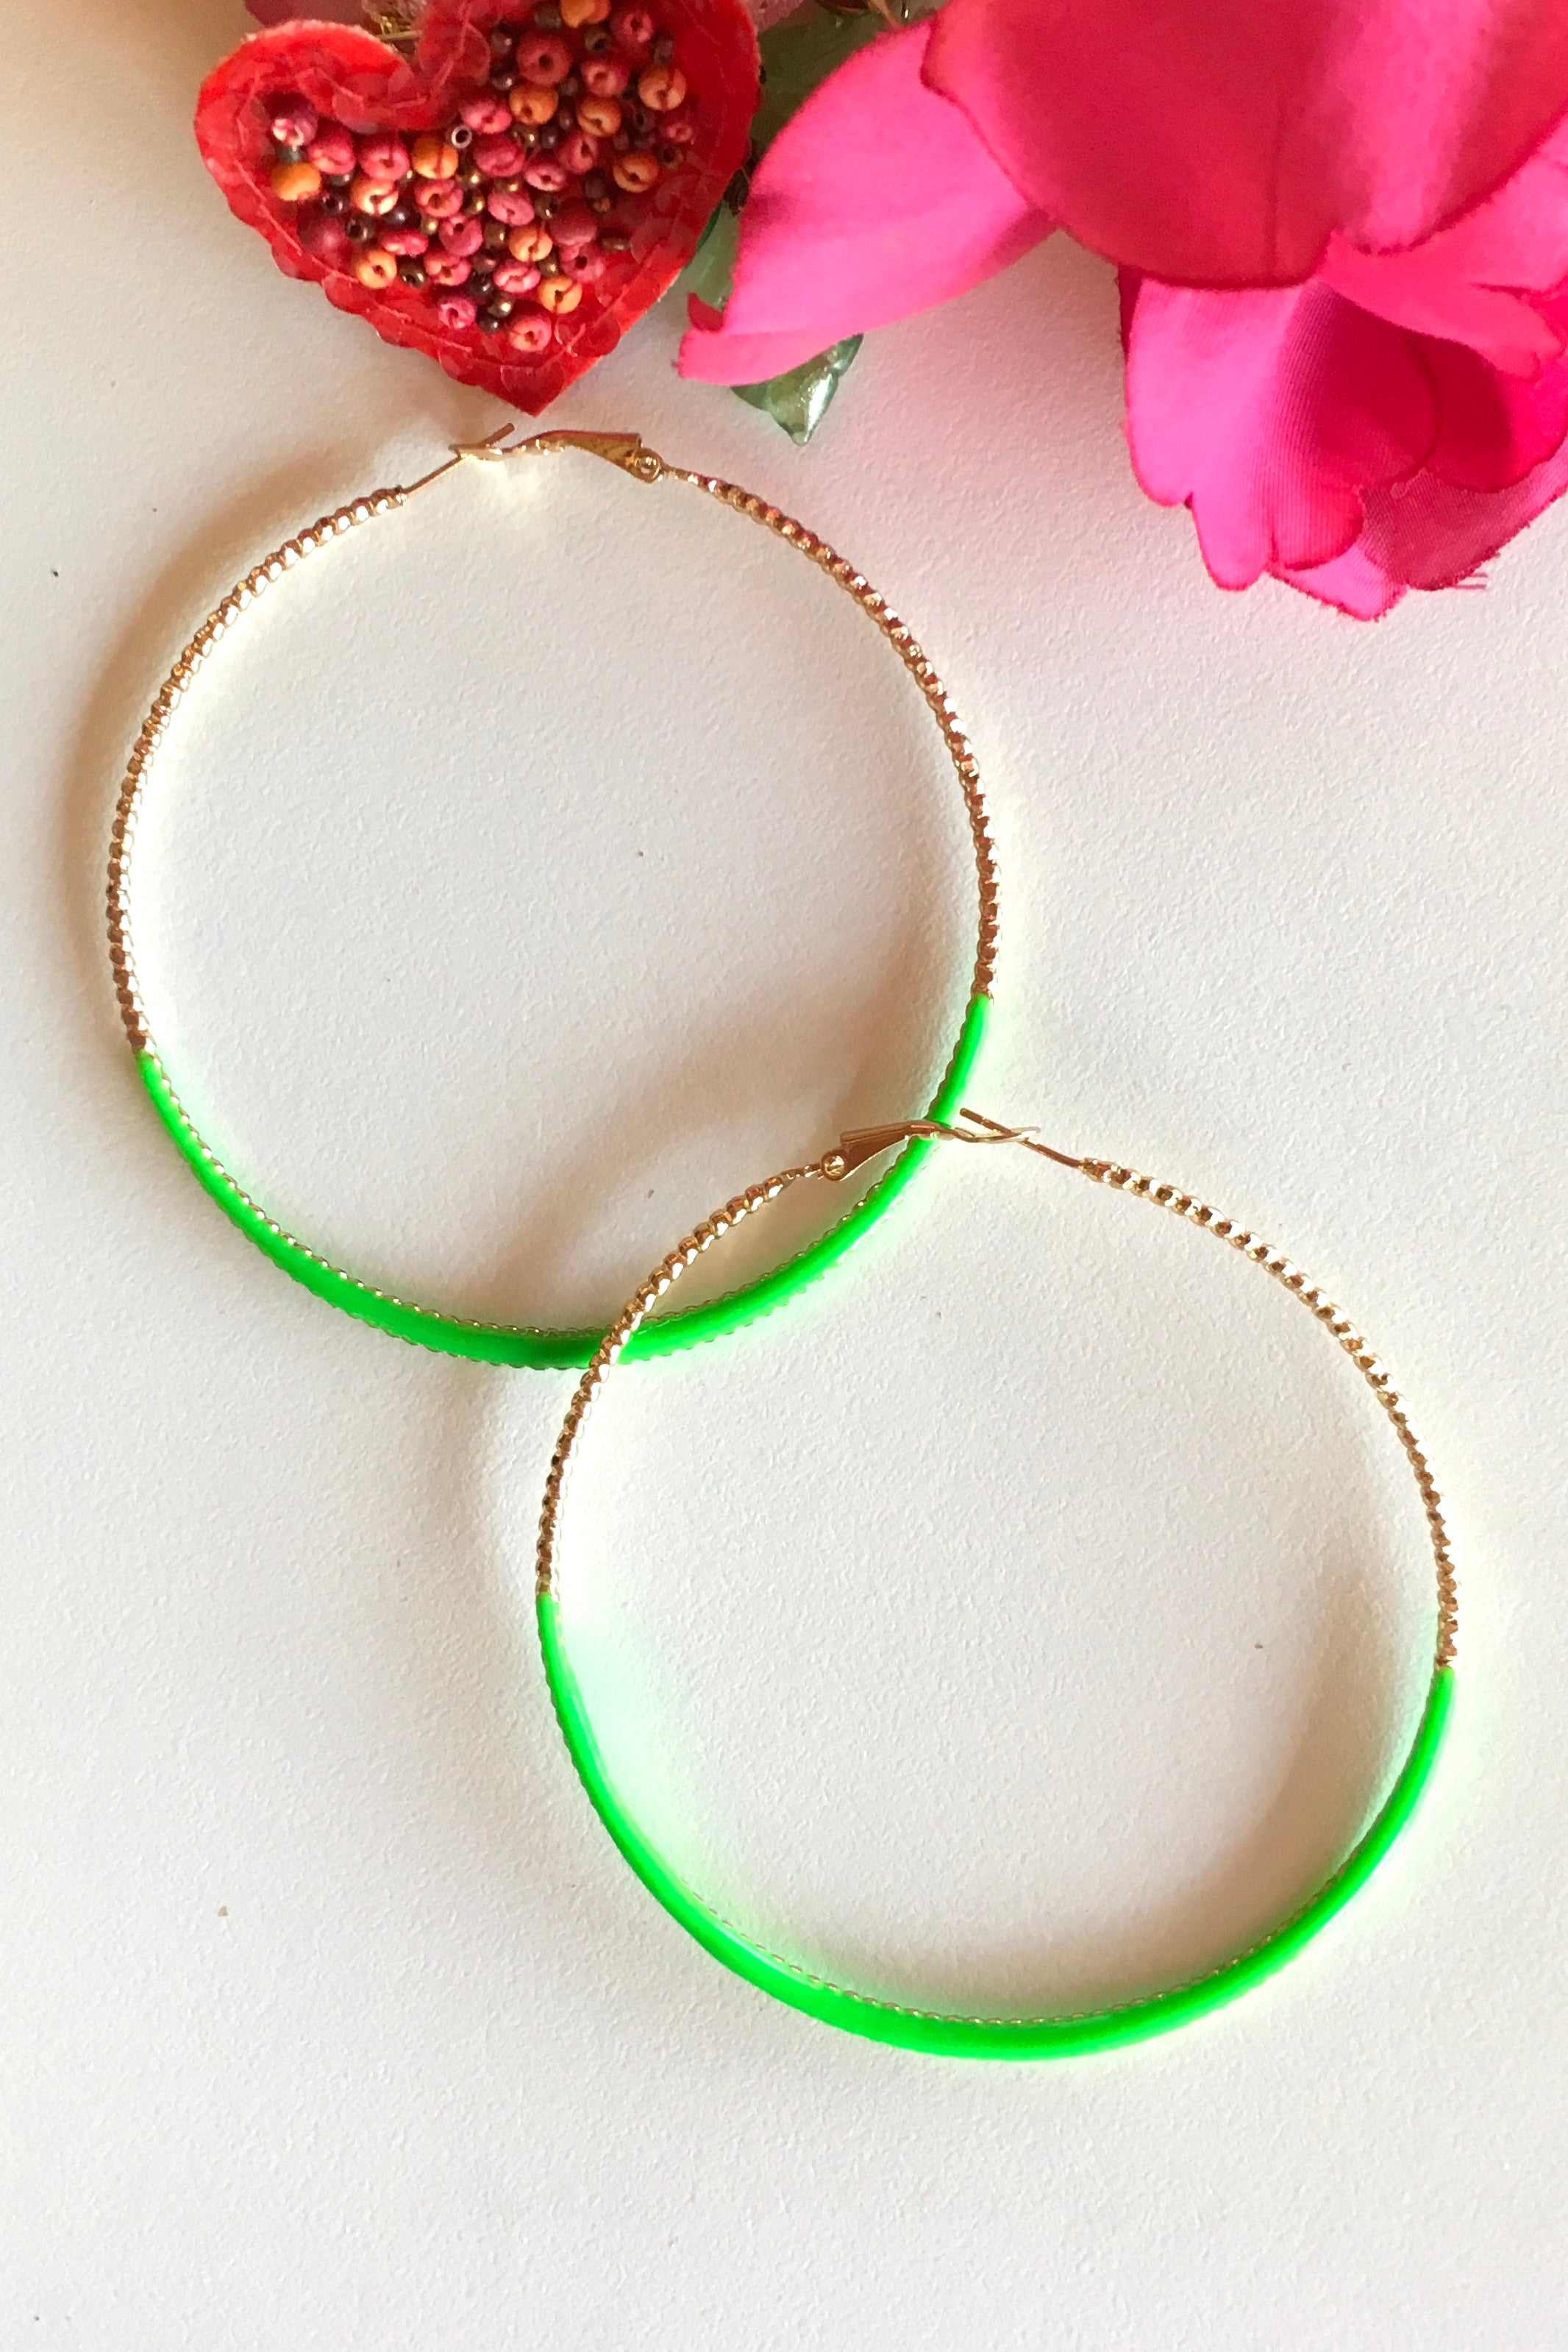 These retro gold hoops are sure to make a statement! Dipped in a splash of colour to accentuate any outfit!